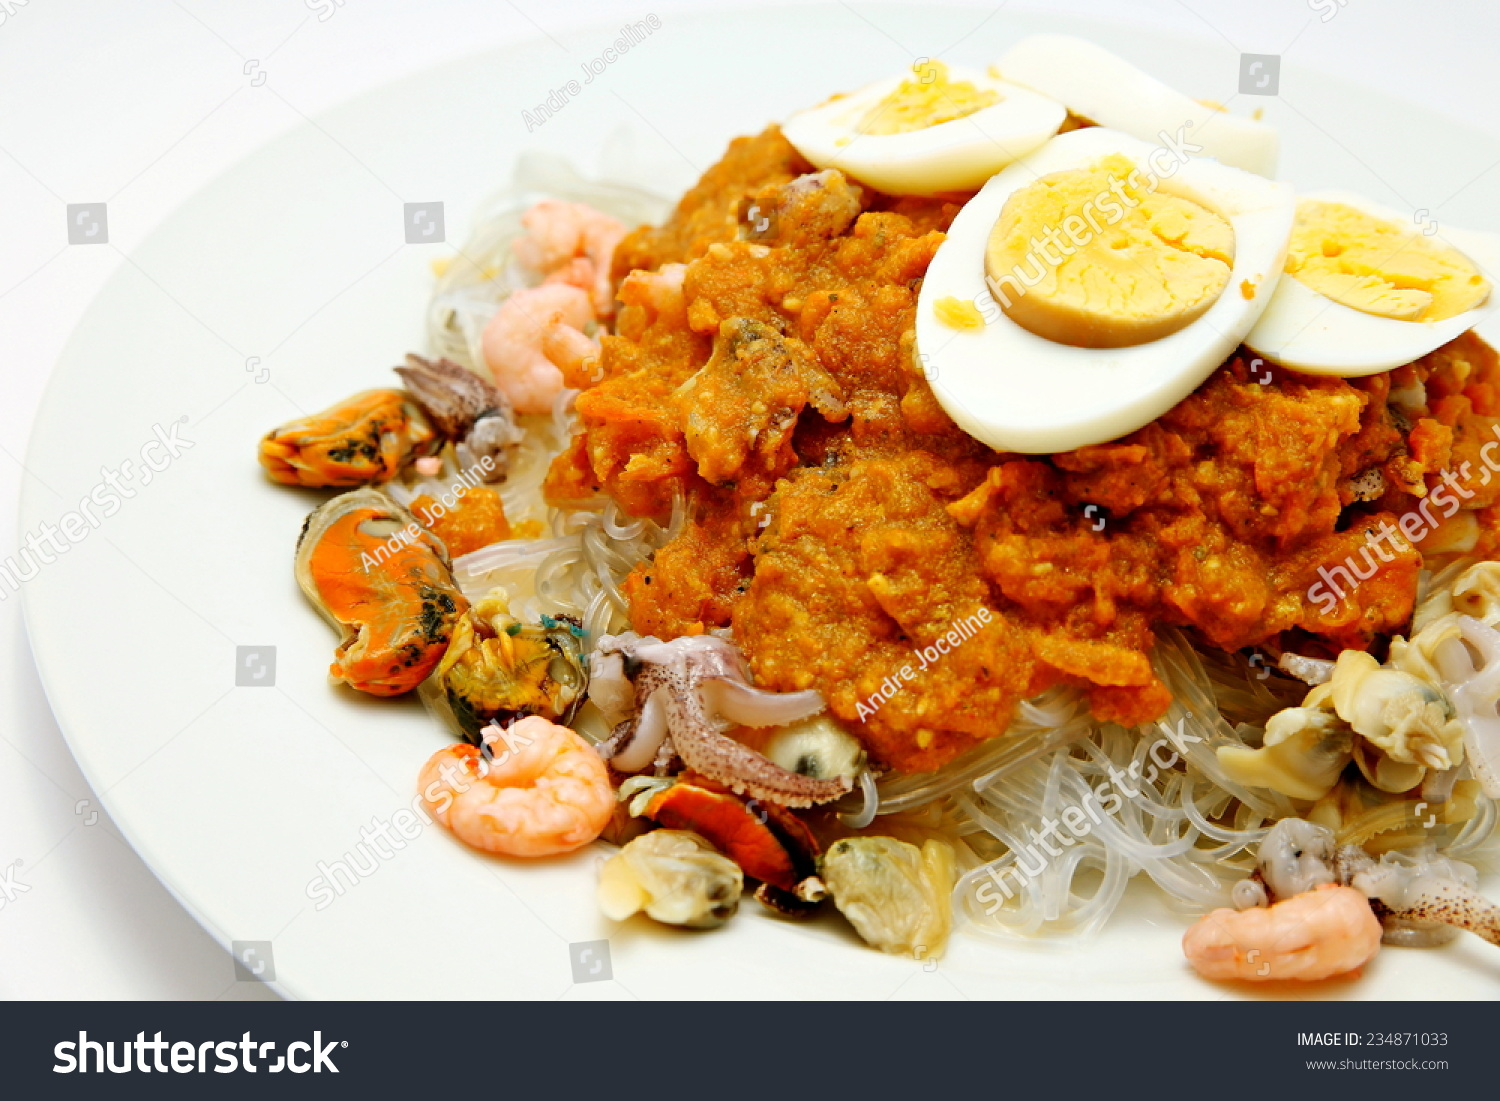 filipino cuisine meal stock photo 234871033 shutterstock lean cuisine log in lean cuisine log in